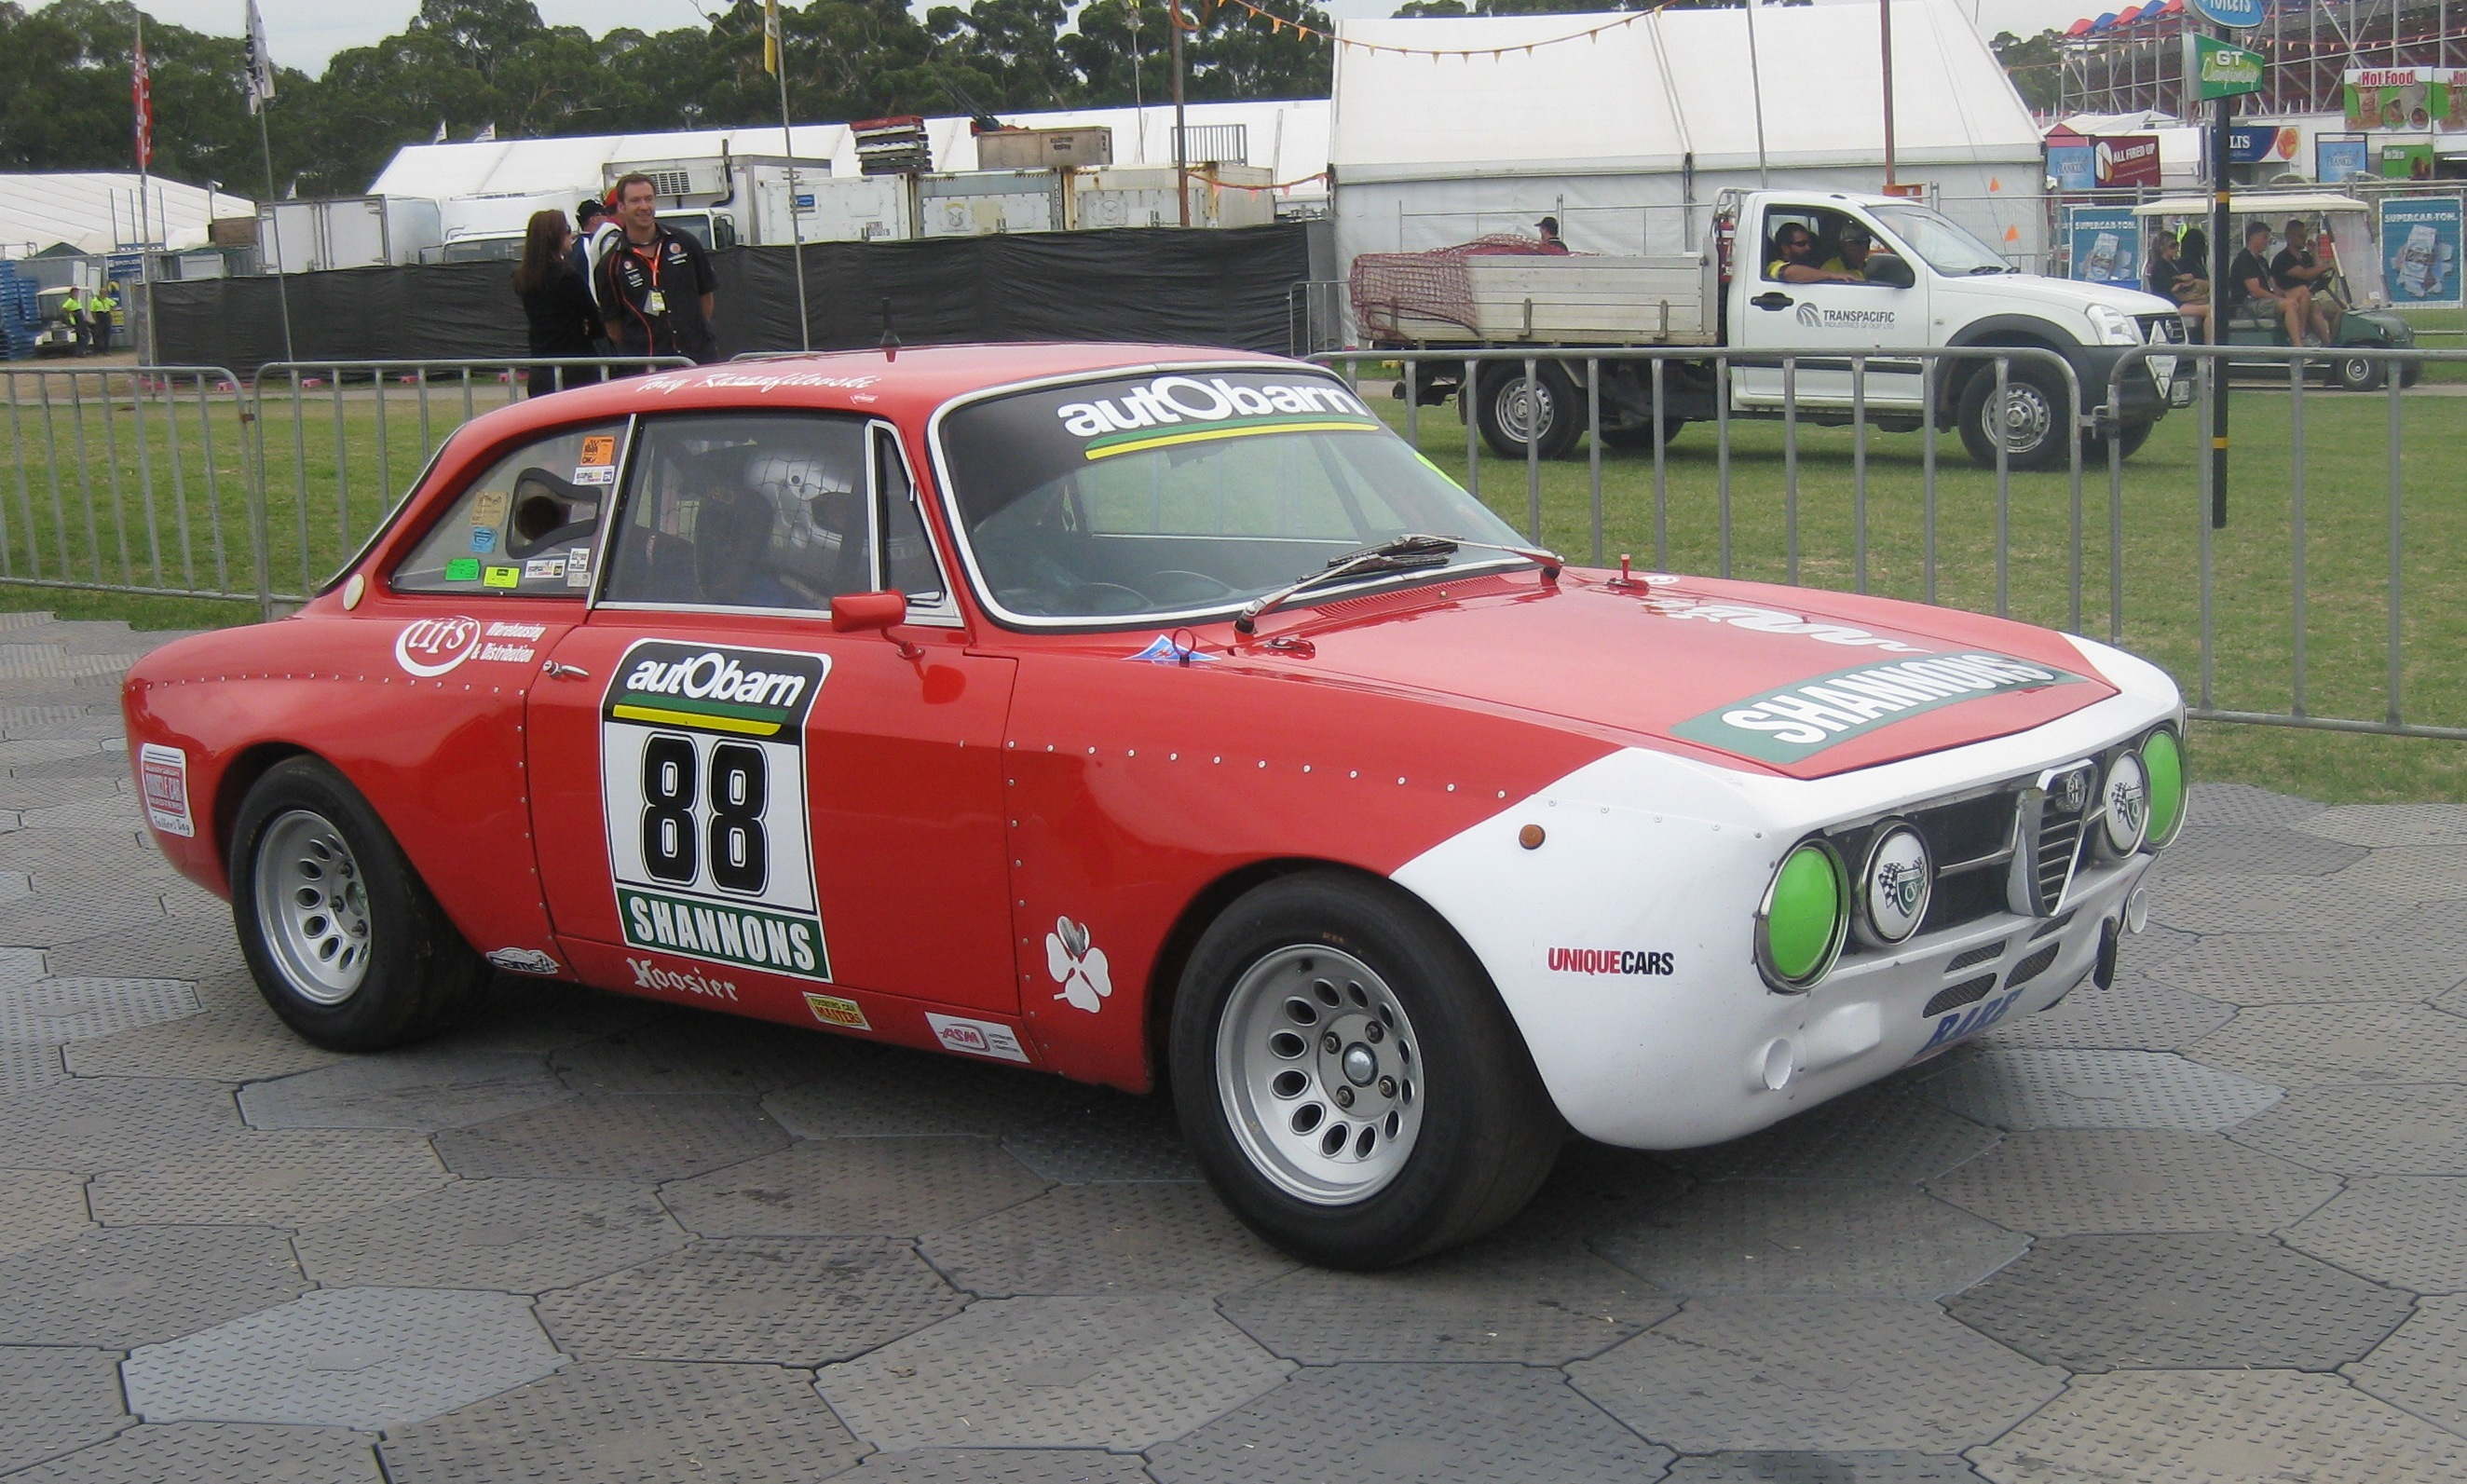 alfa romeo gta coupe images #15